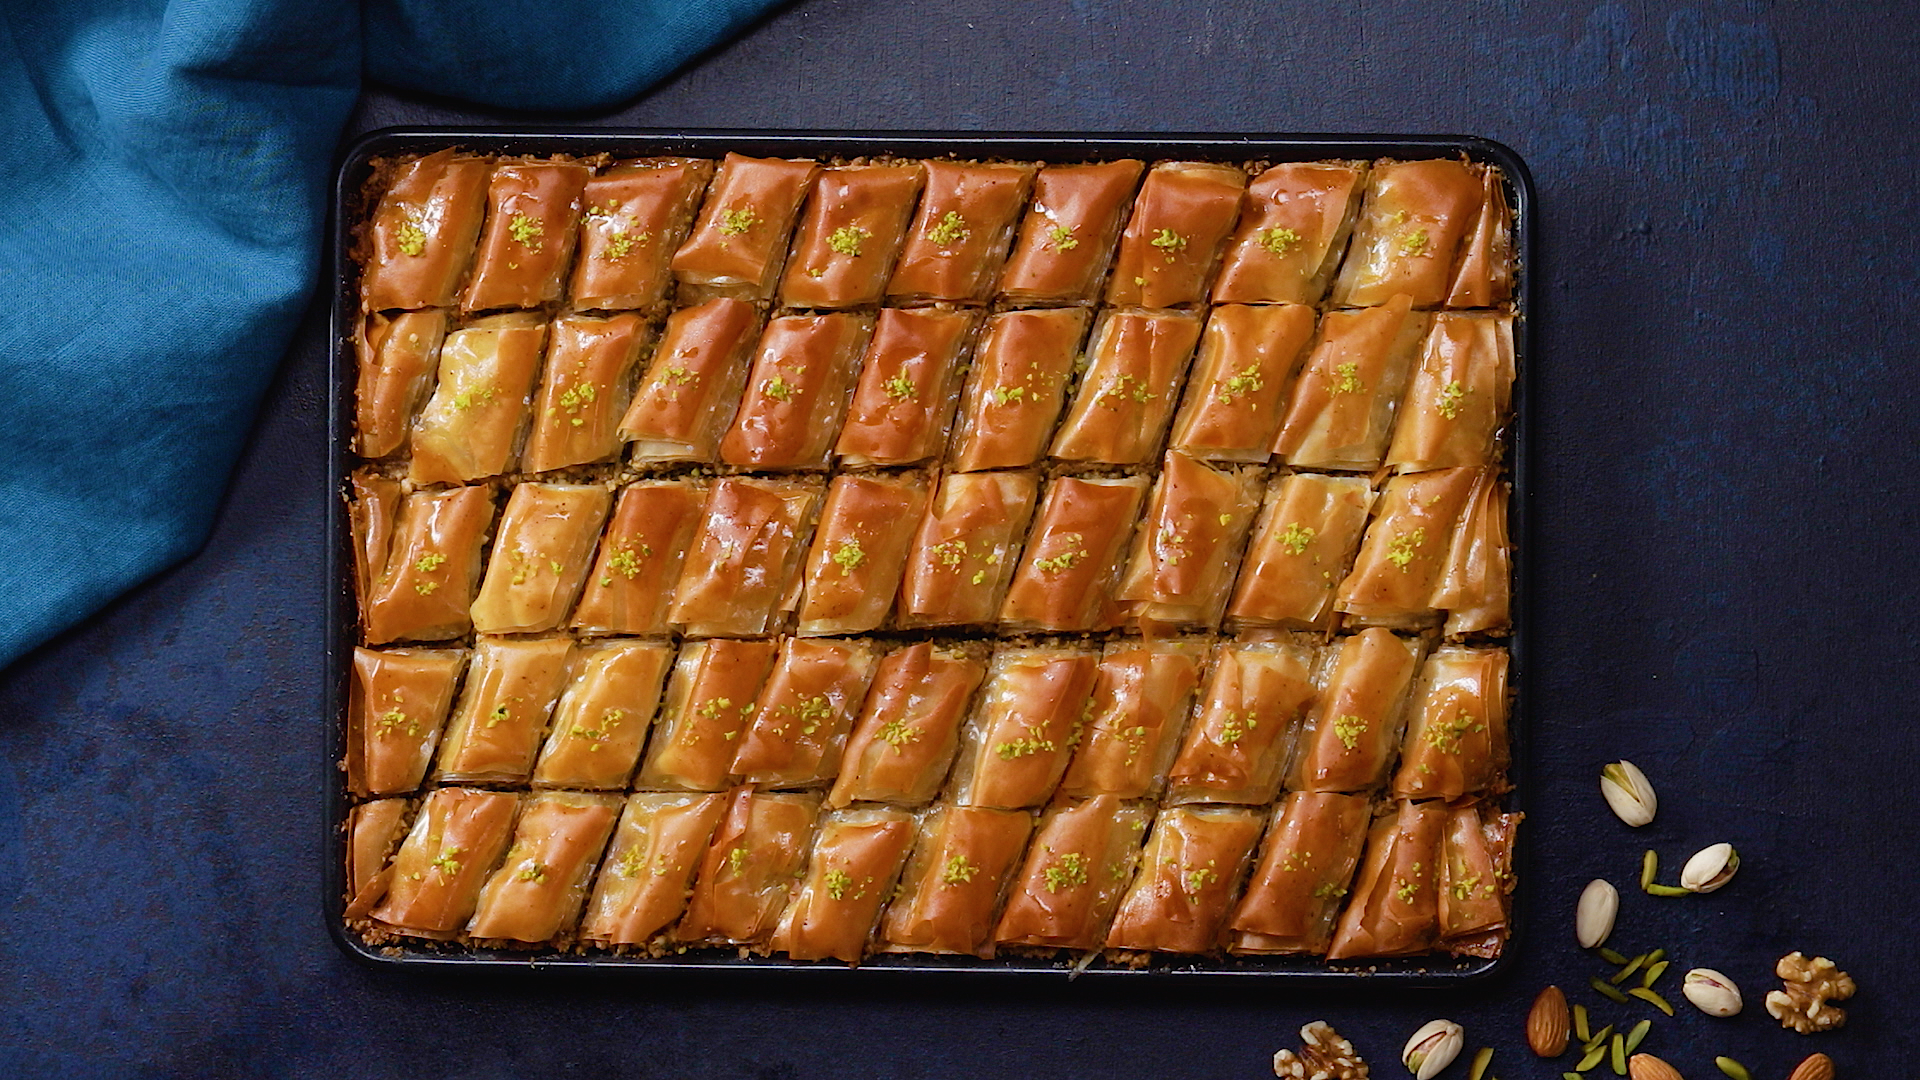 Best Ever Baklava Tastemade